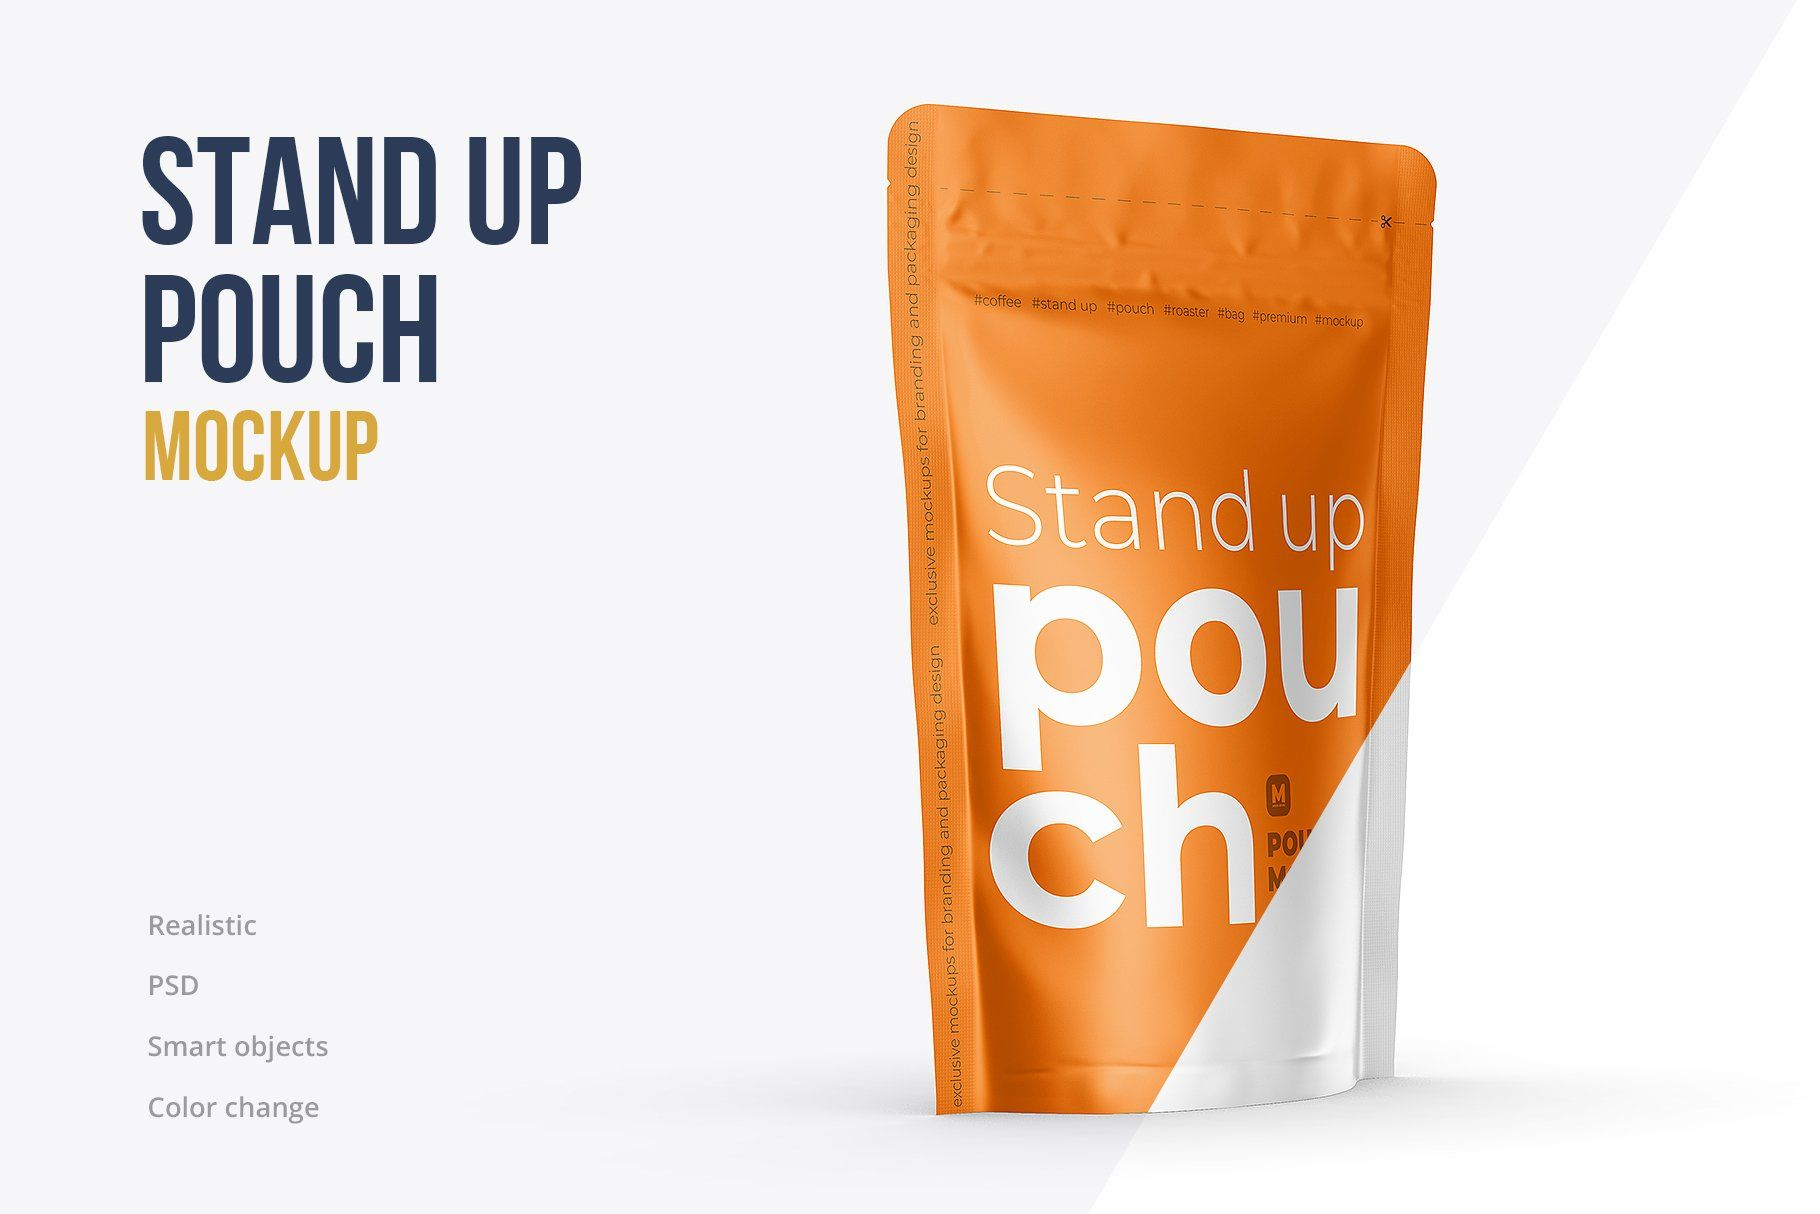 Download Stand Up Pouch Mockup Half Side View By Mock Up Ru On Creativemarket In 2020 Pouch Stand Up Drink Bag